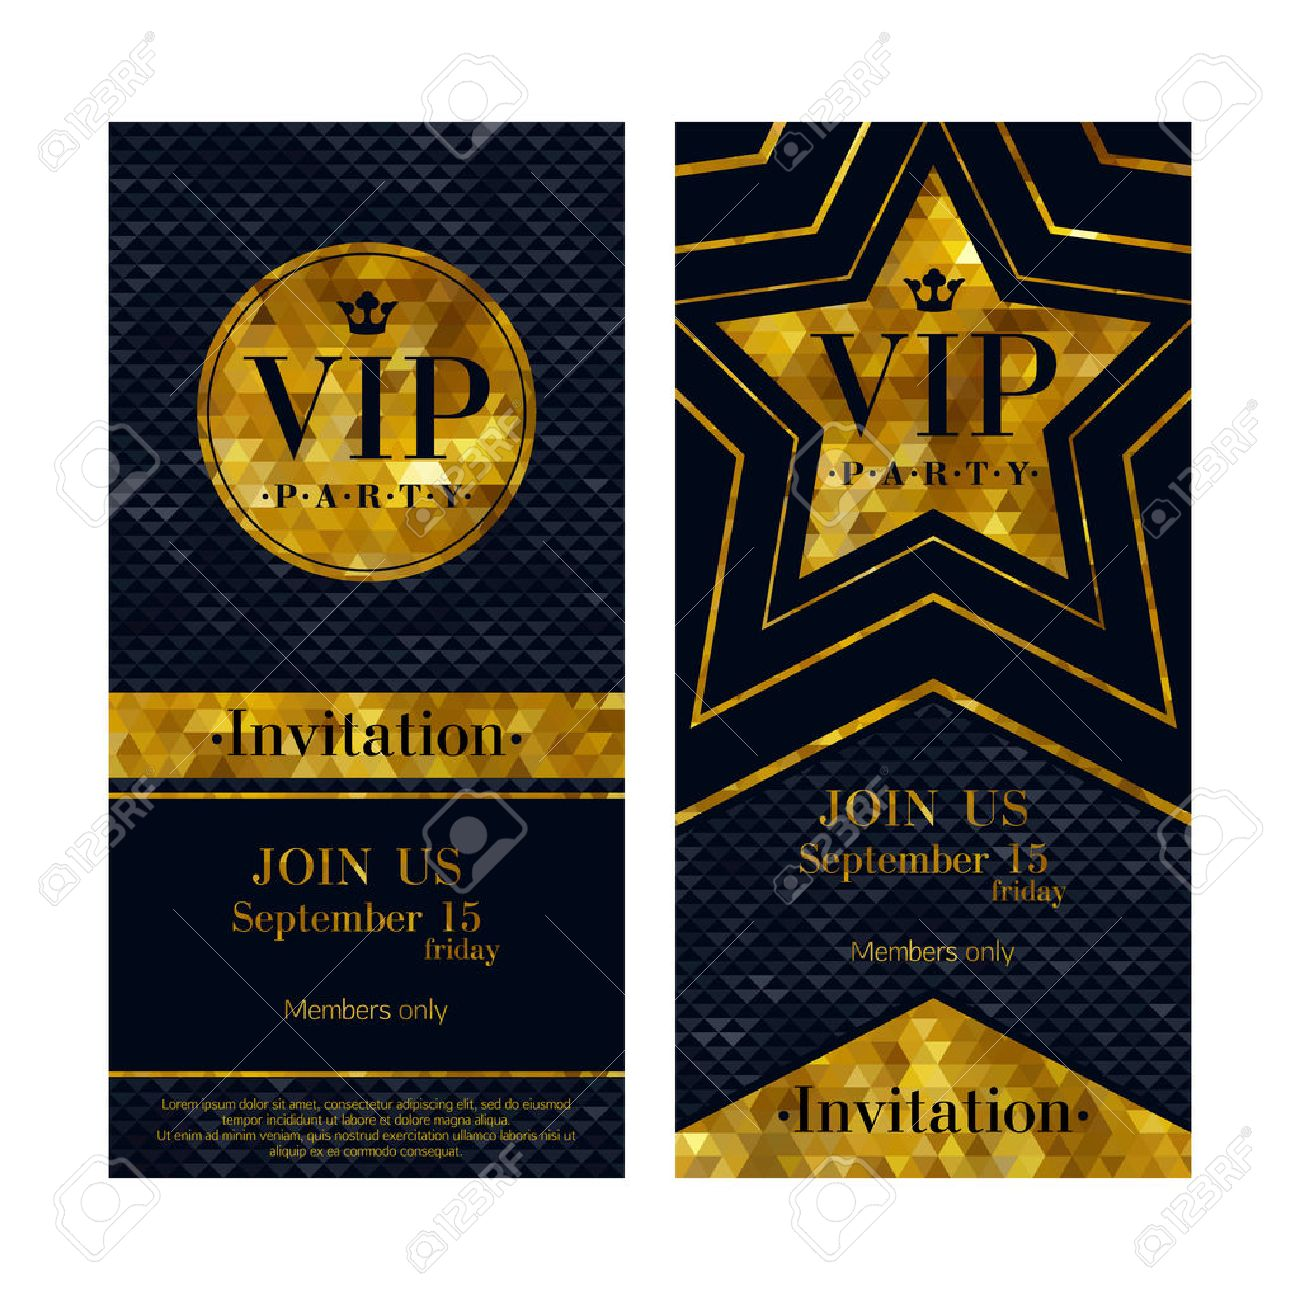 Invitation card stock photos royalty free invitation card images vip party premium invitation cards posters flyers black and golden design template set circle stopboris Gallery